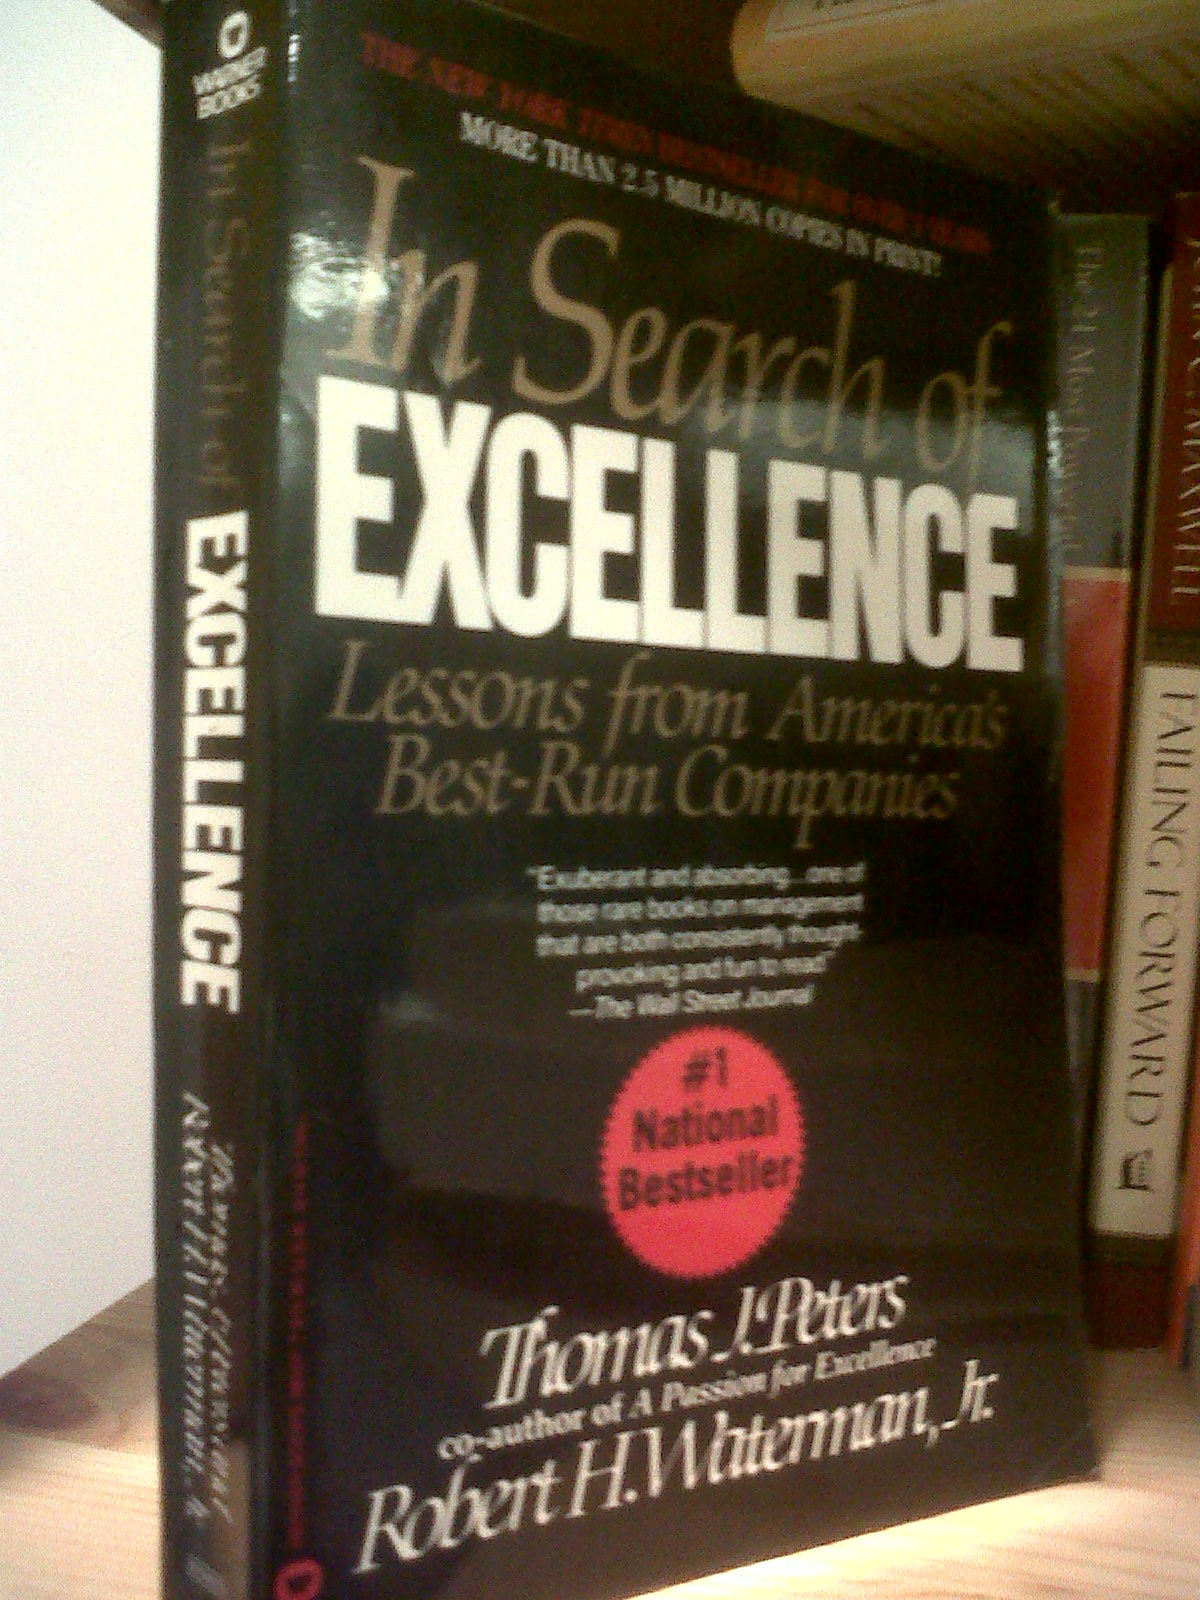 Books read in search of excellence lessons from americas best run in search of excellence lessons from americas best run companies by thomas j peters robert h waterman jr publicscrutiny Gallery